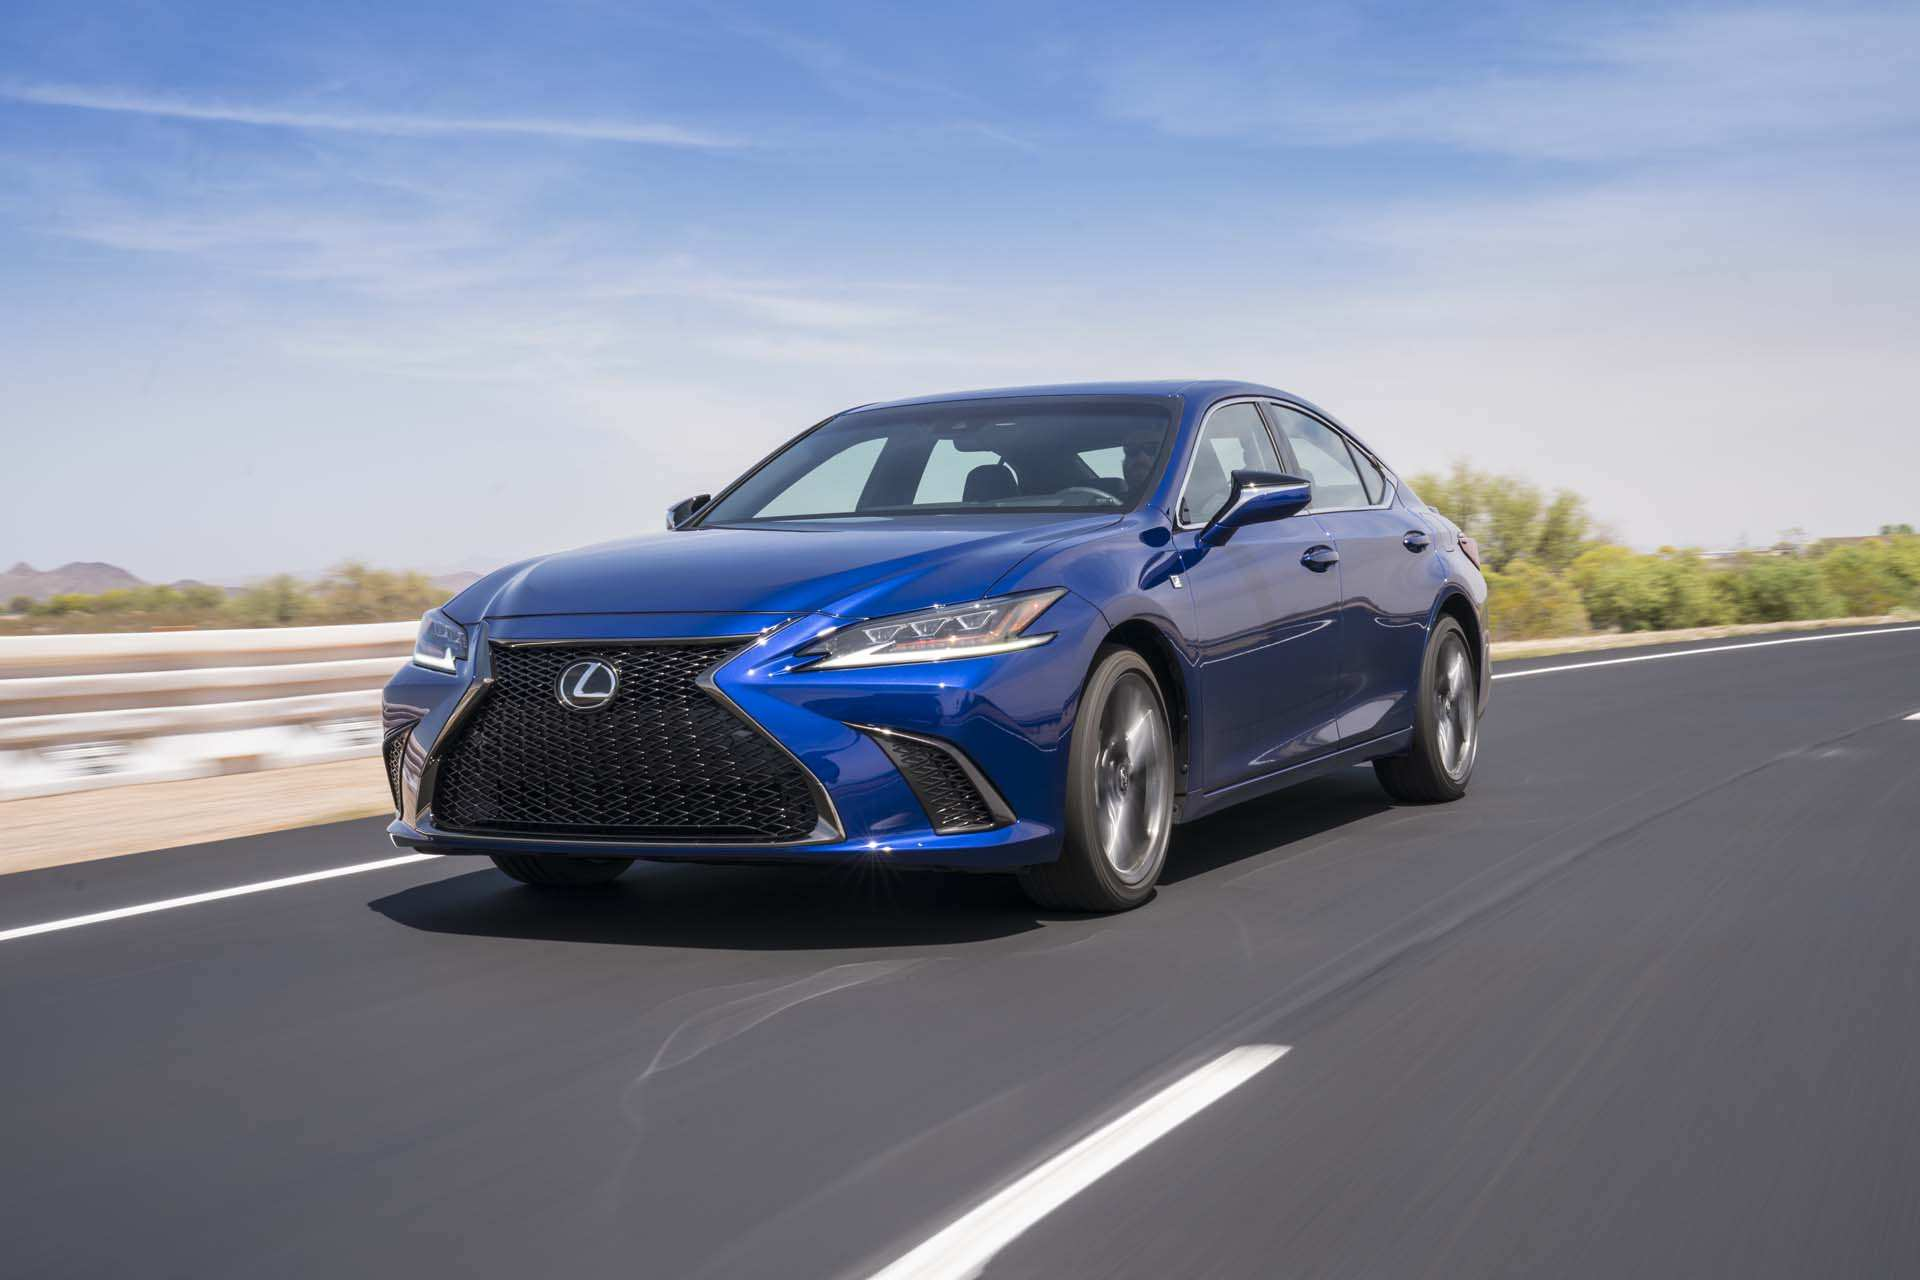 14 All New 2019 Lexus Gs Redesign Images with 2019 Lexus Gs Redesign